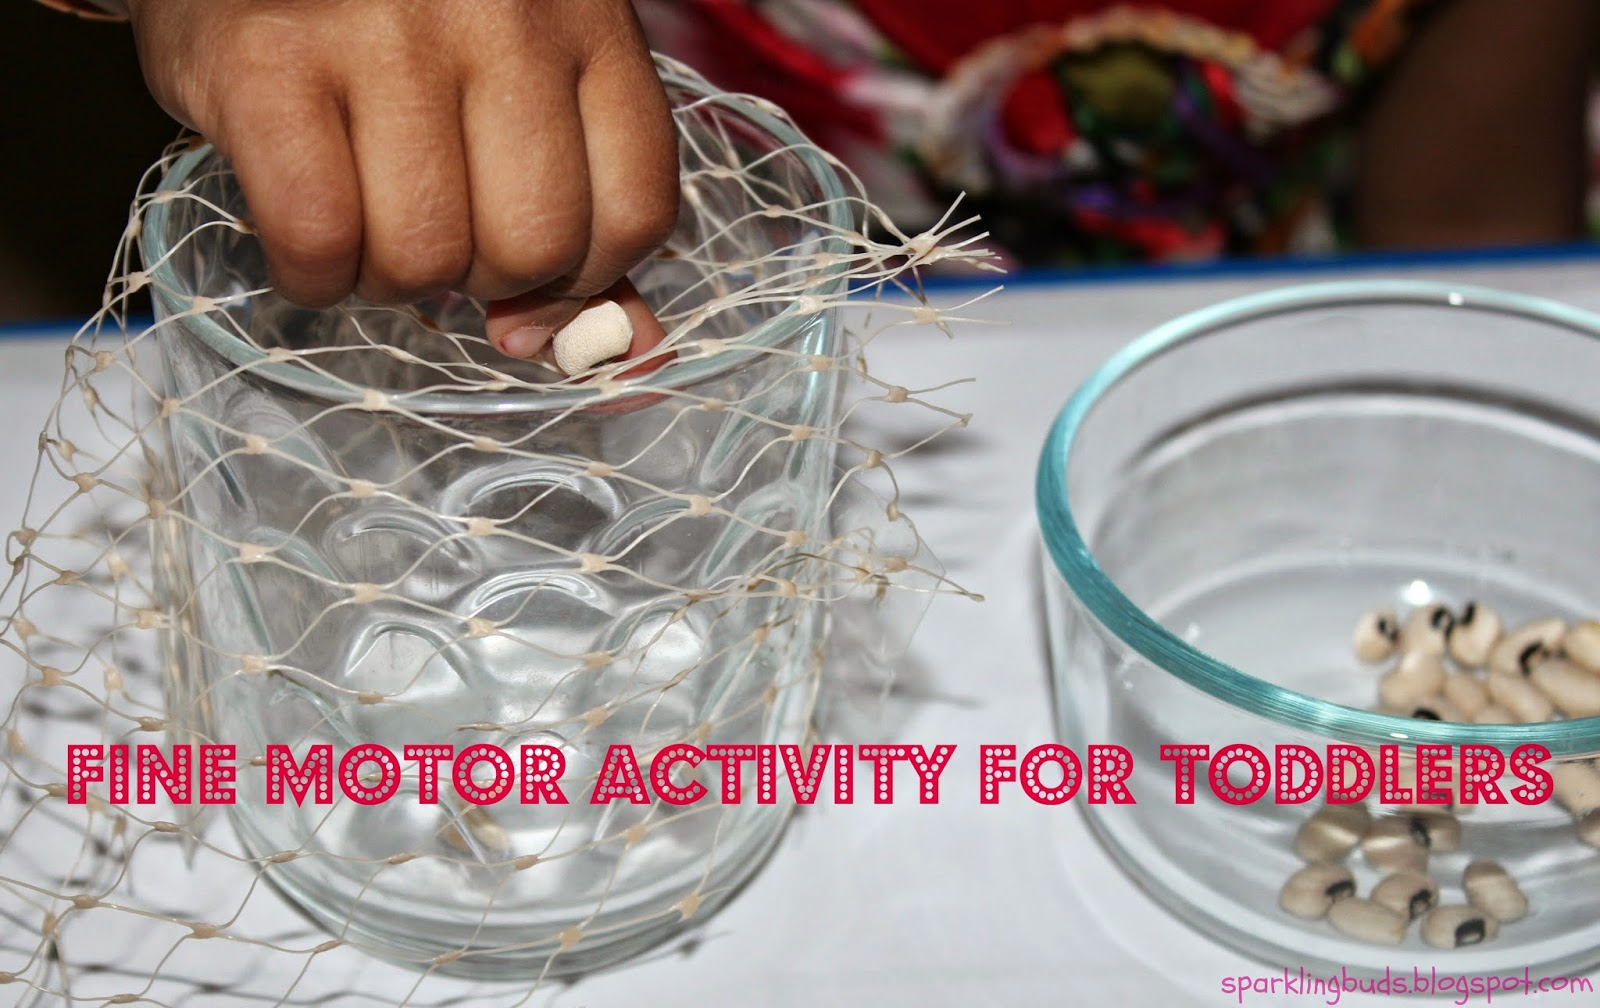 Fine Motor Activity With Vegetable Mesh Bag